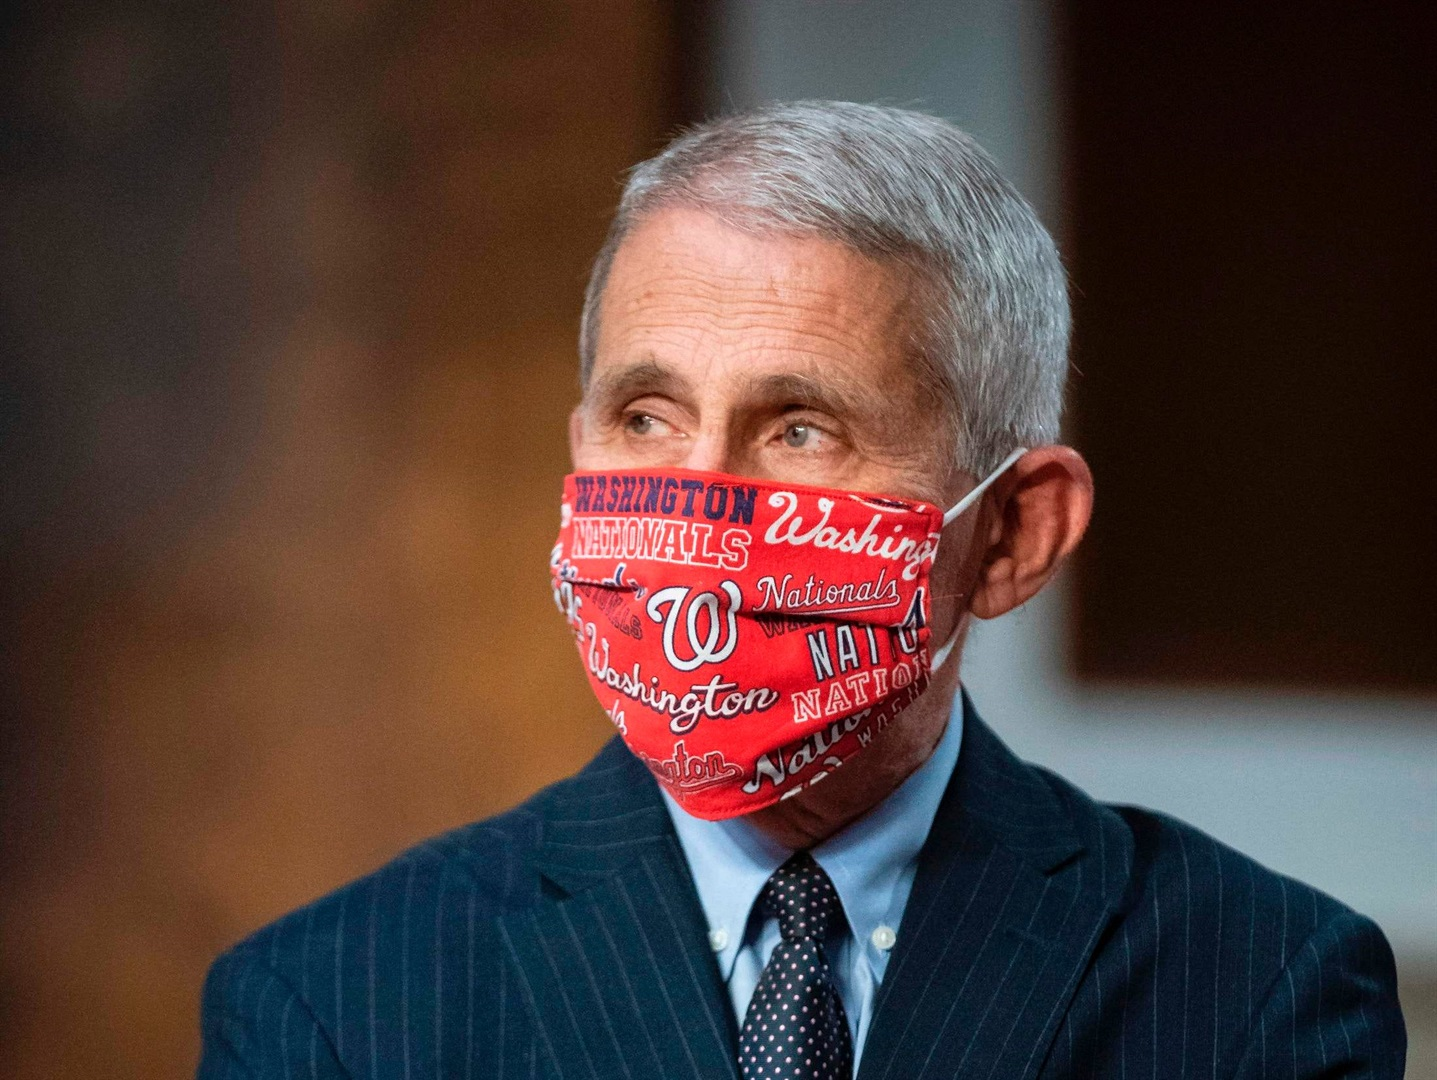 Fauci jokes he was 'the skunk' at Trump's COVID-19 picnic